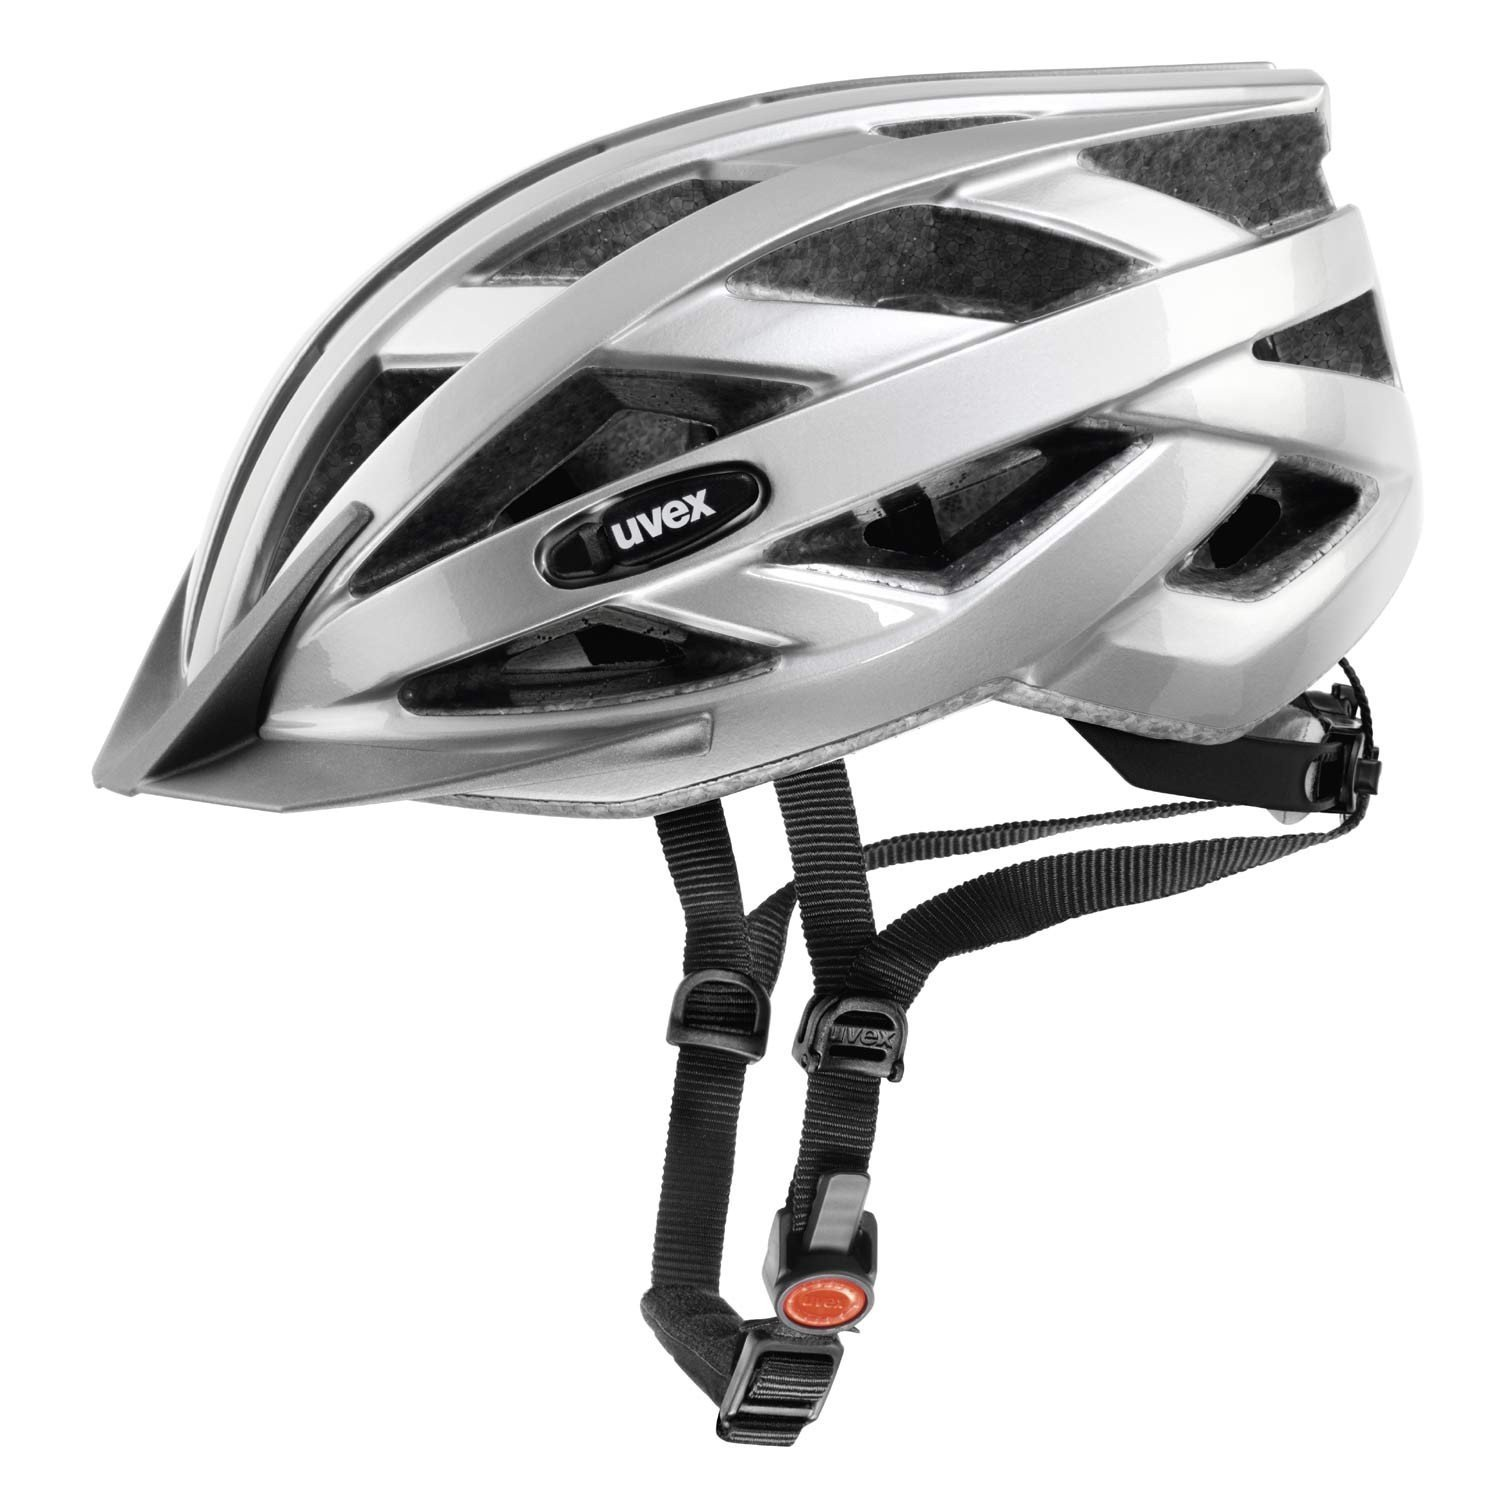 Silver Uvex Bicycle Helmets